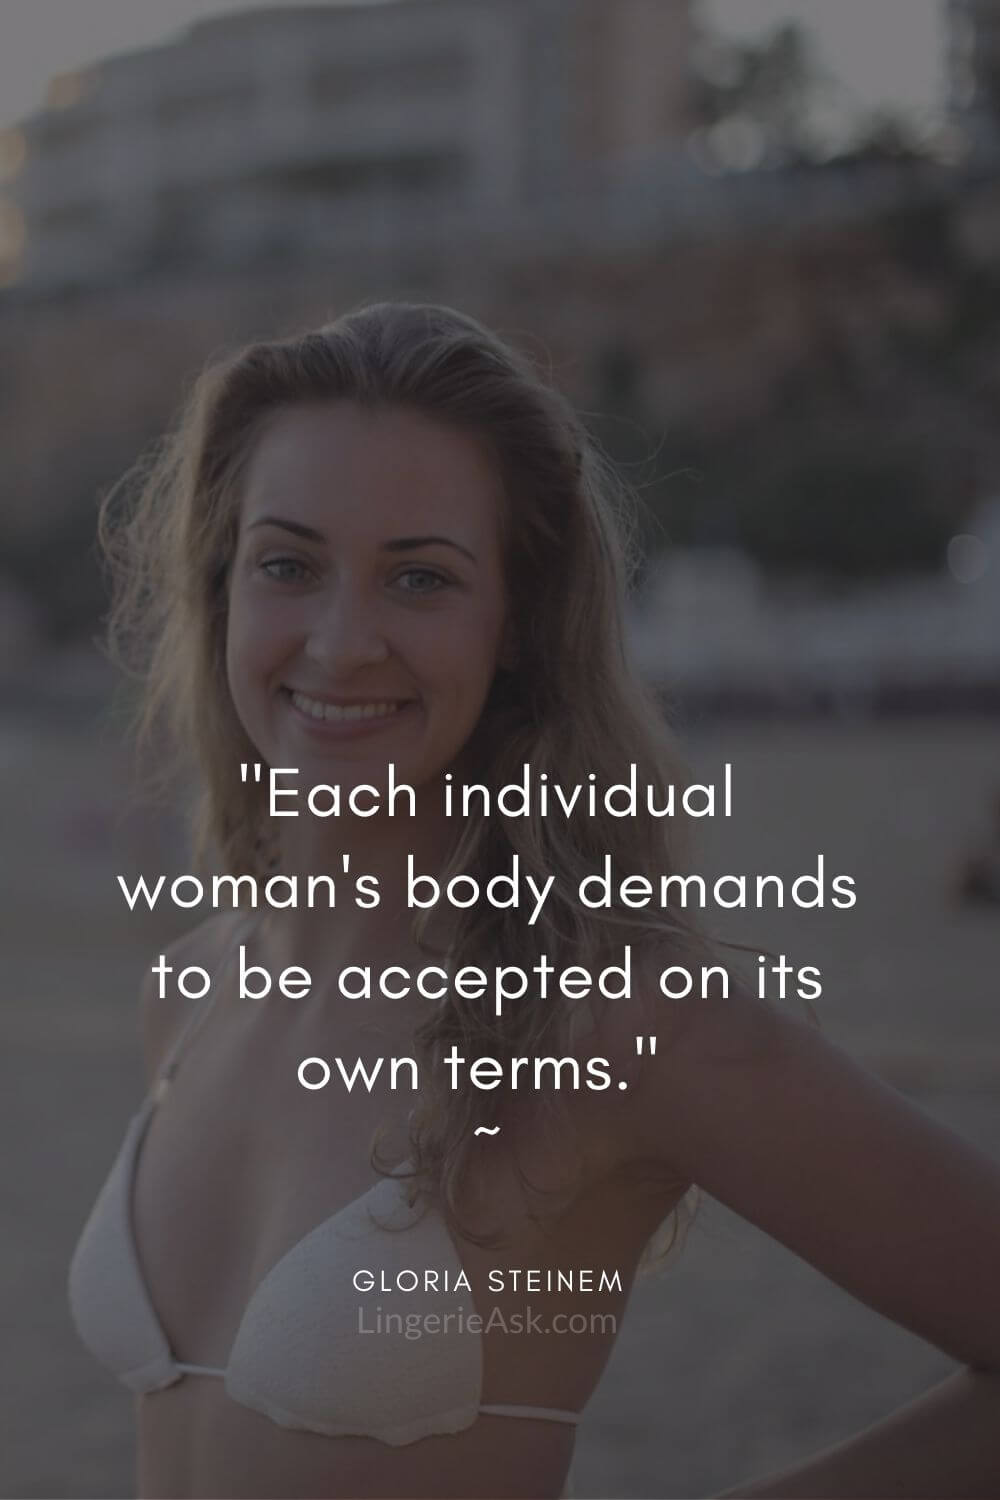 Each individual woman's body demands to be accepted on its own terms. _ Gloria Steinem